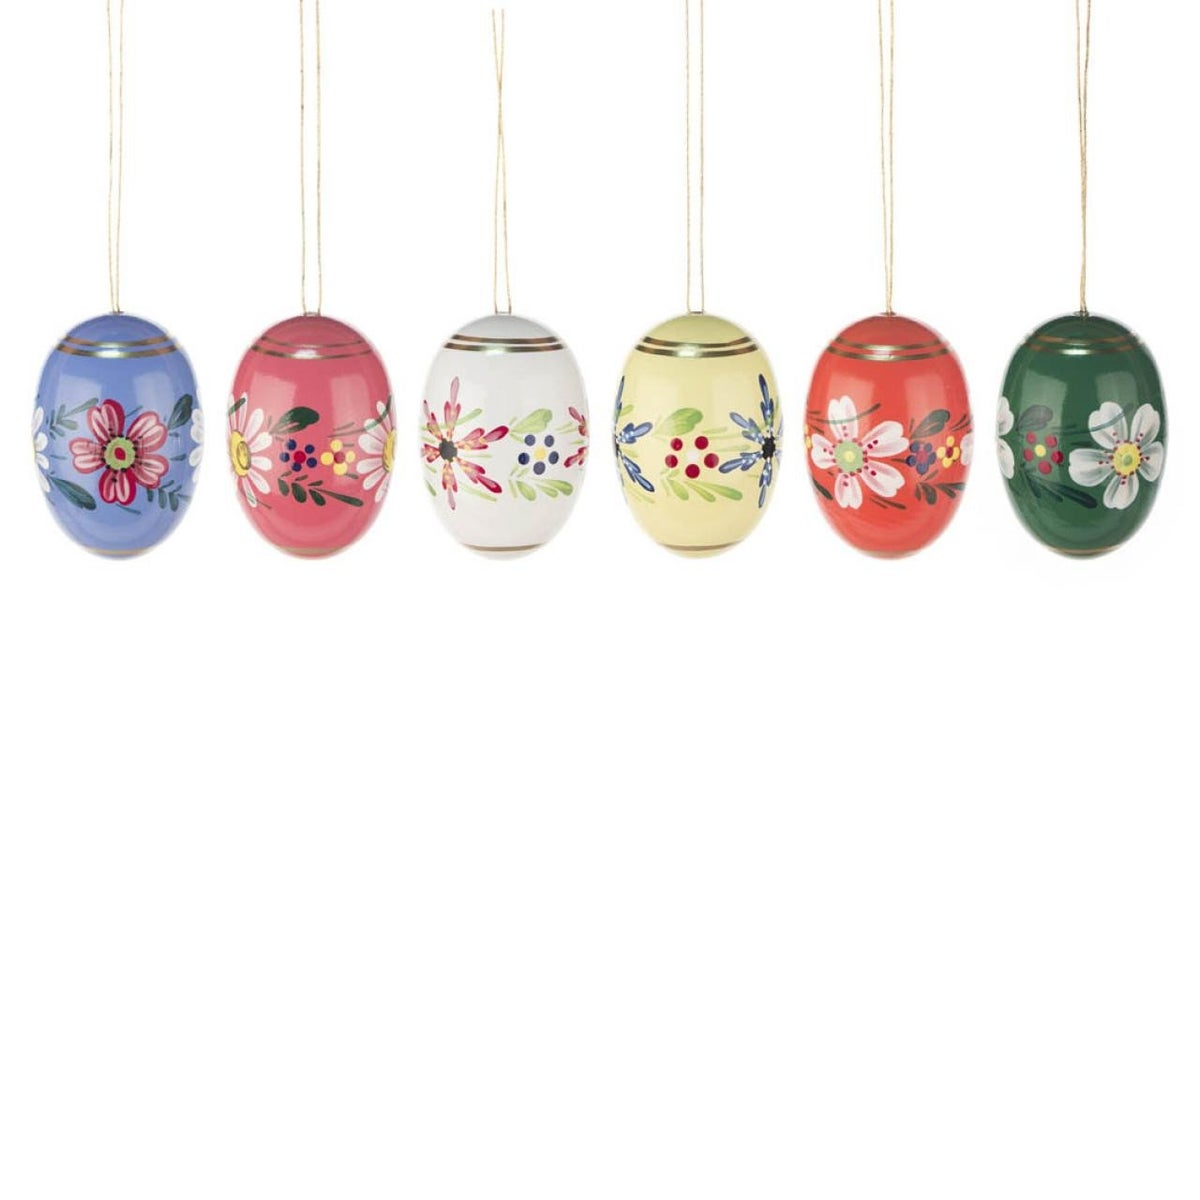 Image of Hanging Easter Eggs